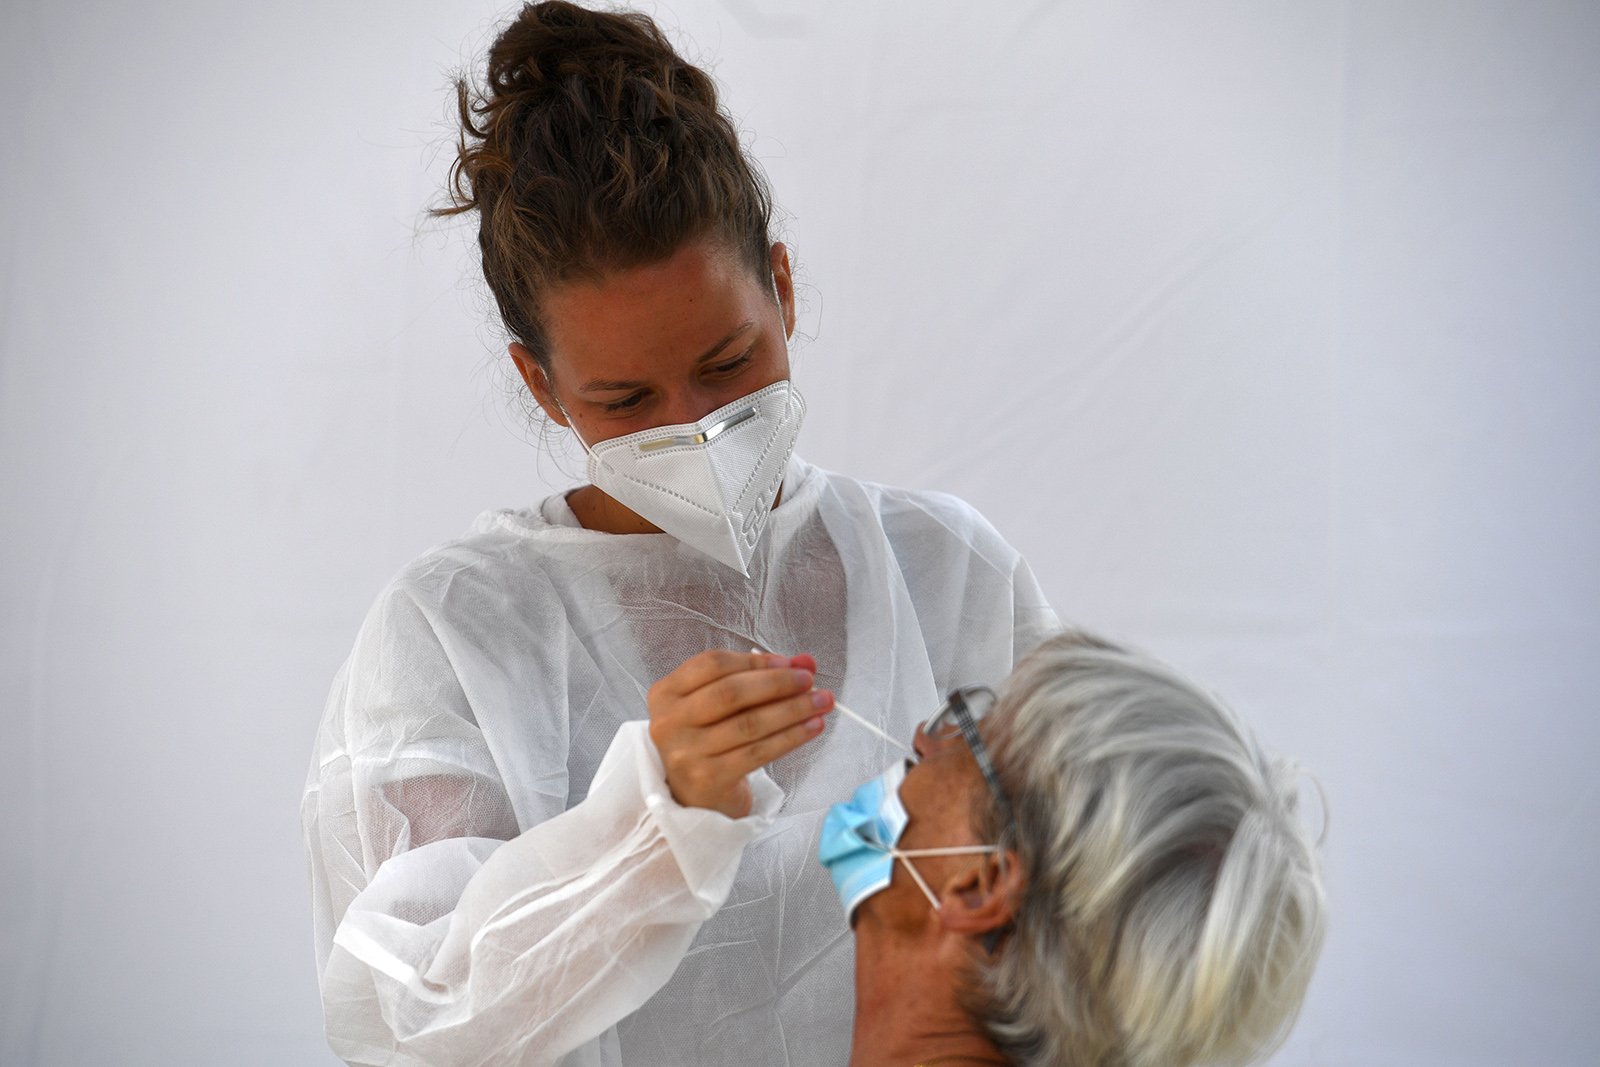 A medical staff member collects a swab sample from a woman at a Covid-19 testing site in Saint-Nic, France, on August 12.